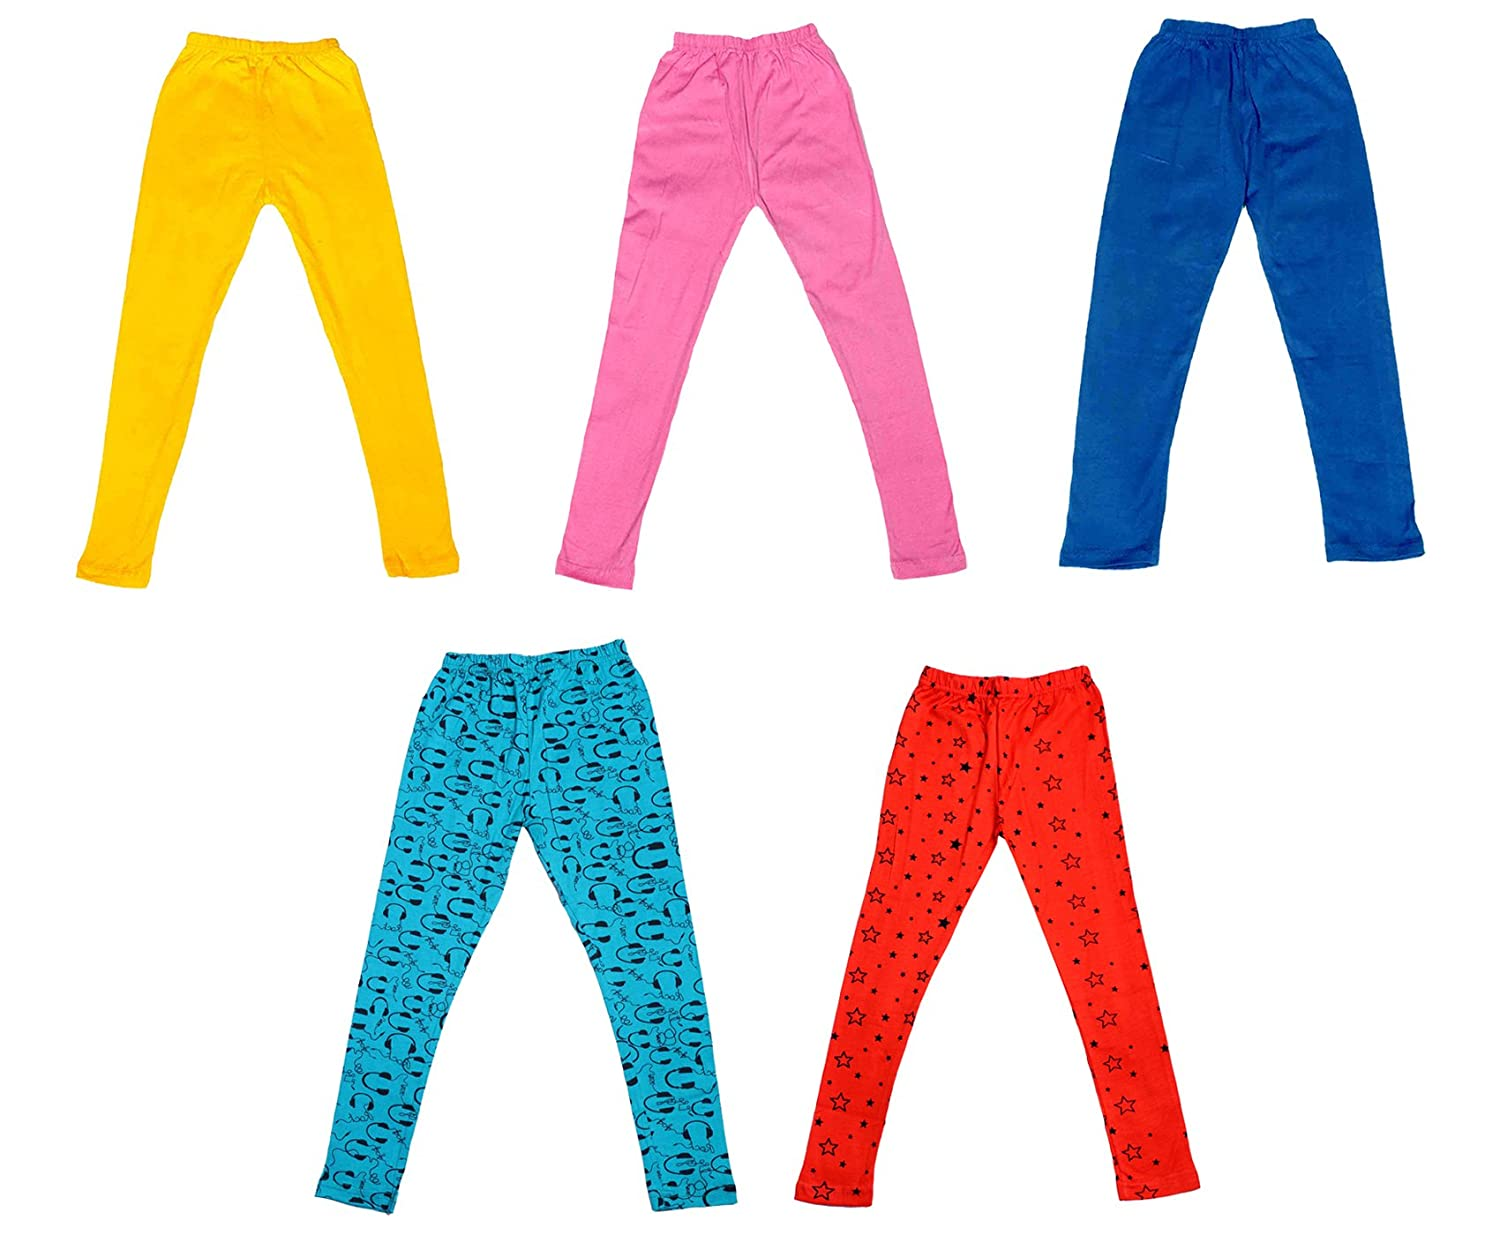 Pack of 5 Indistar Super Soft and Stylish 3 Solid and 2 Cotton Printed Leggings For Girls